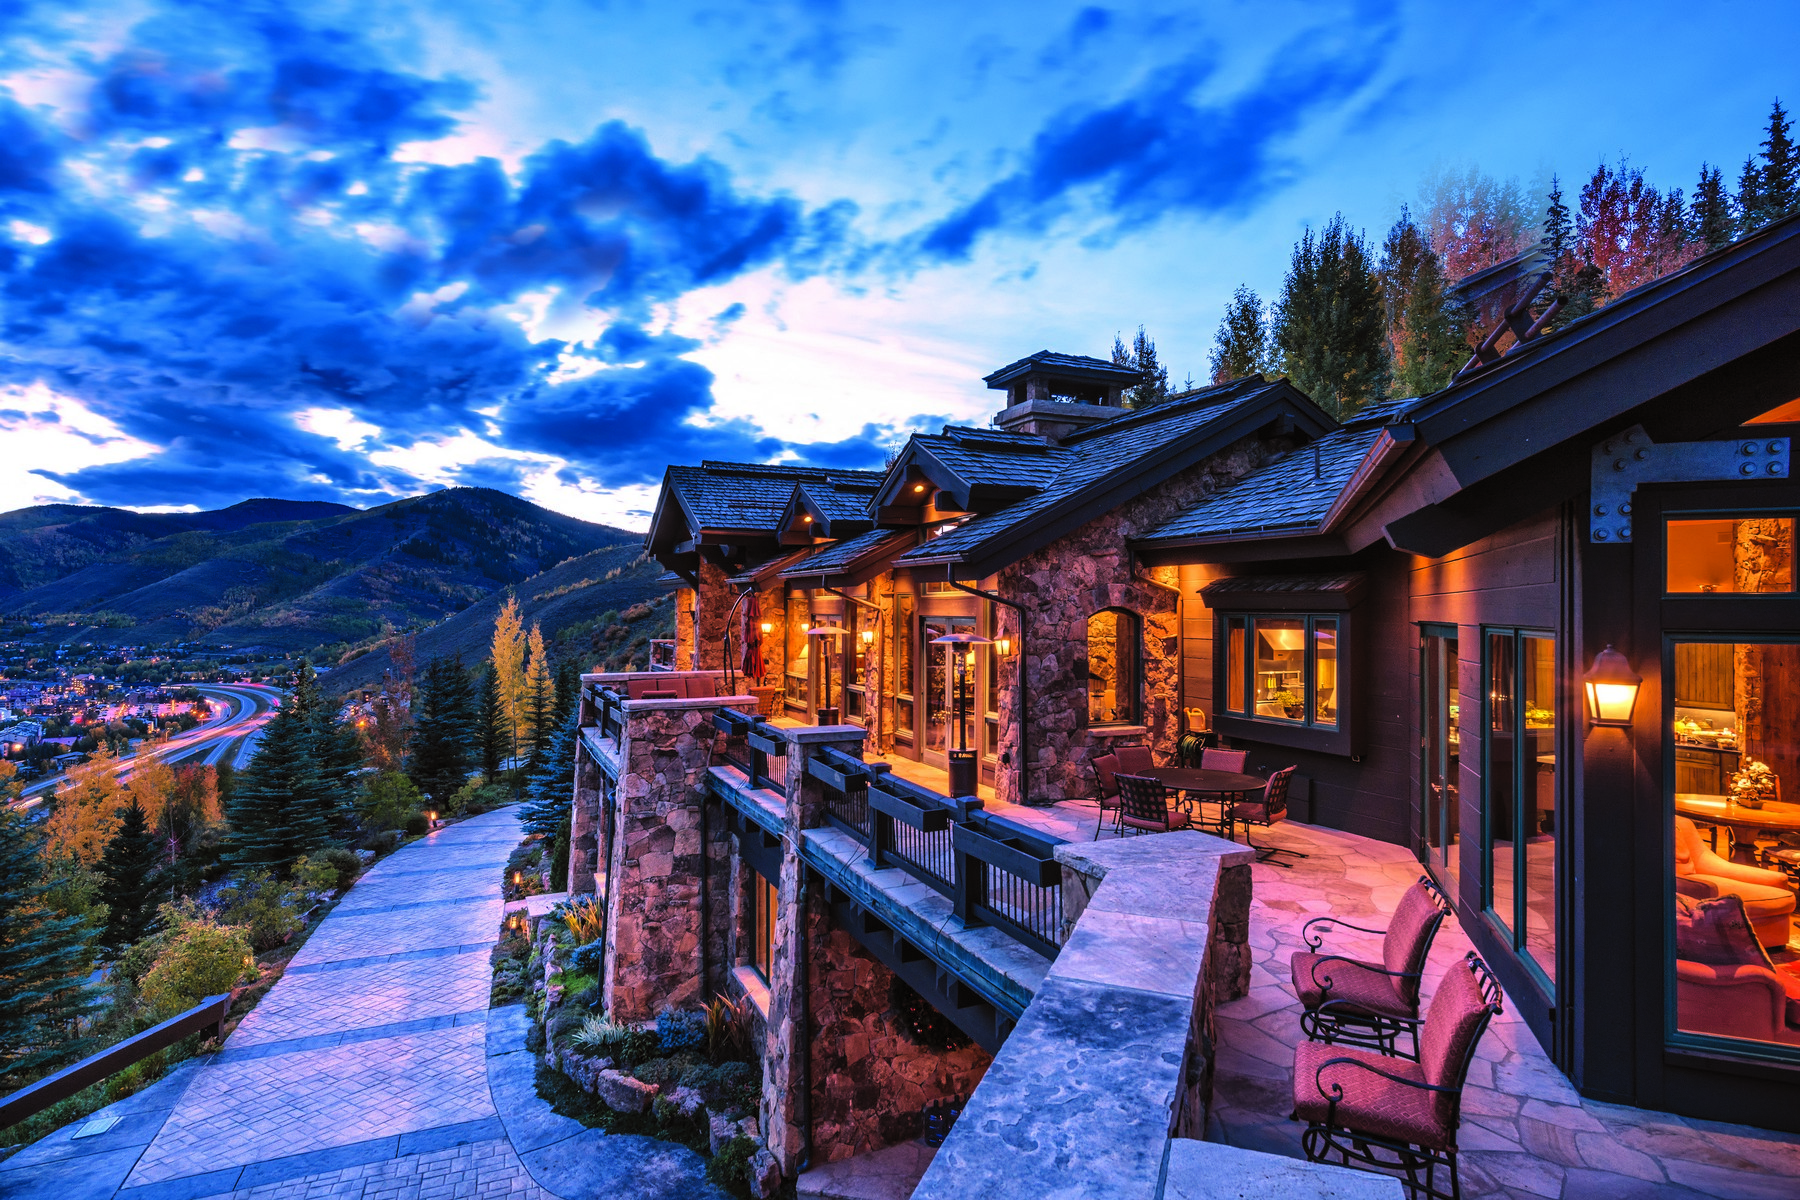 Casa Unifamiliar por un Venta en Direct Views of Vail Mountain 971 Spraddle Creek Rd Vail, Colorado 81657 Estados Unidos